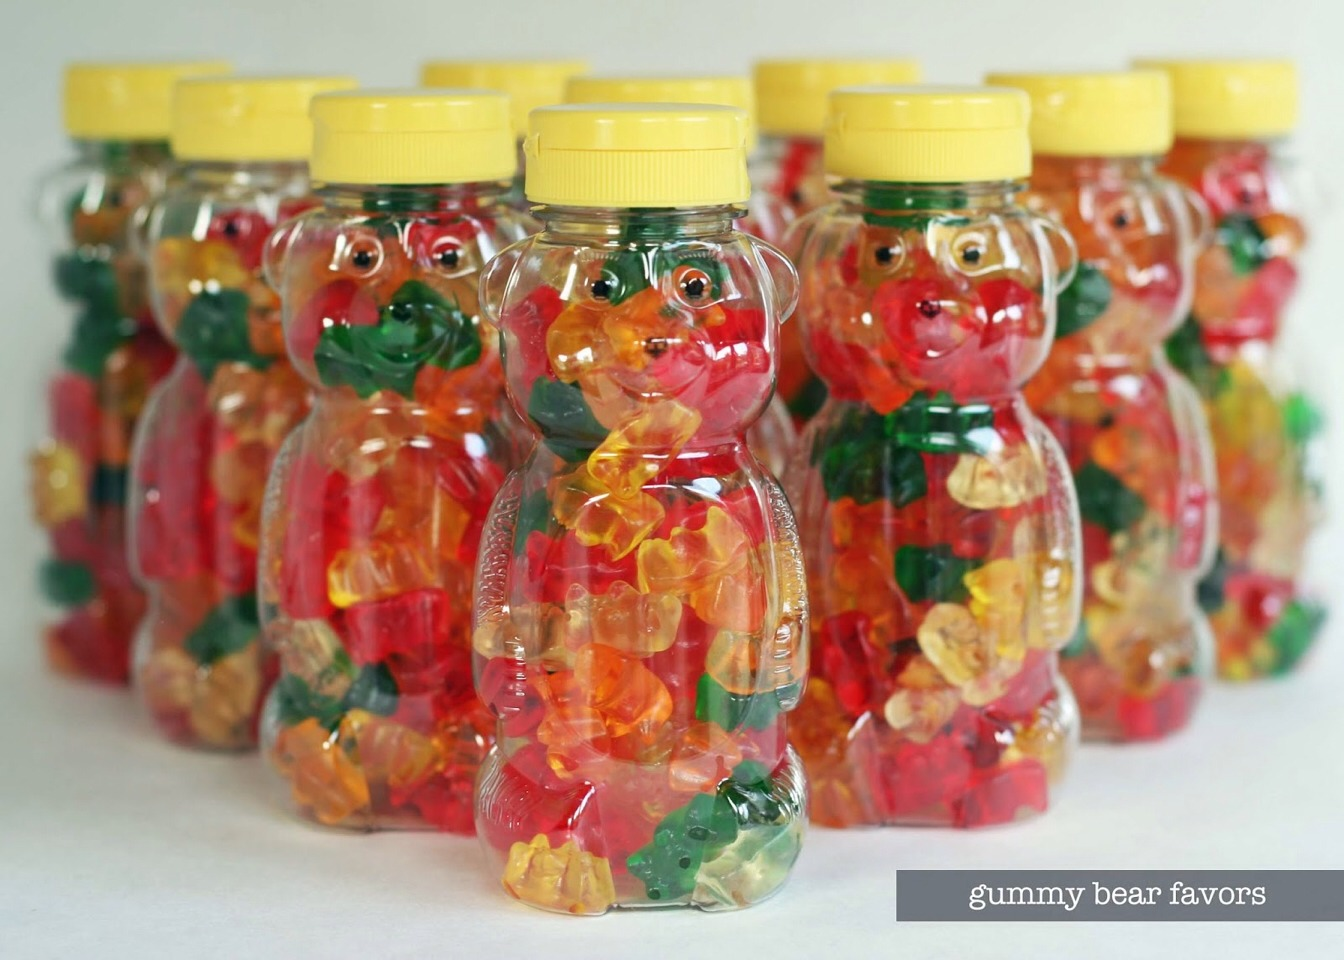 Your going to need gummy bears